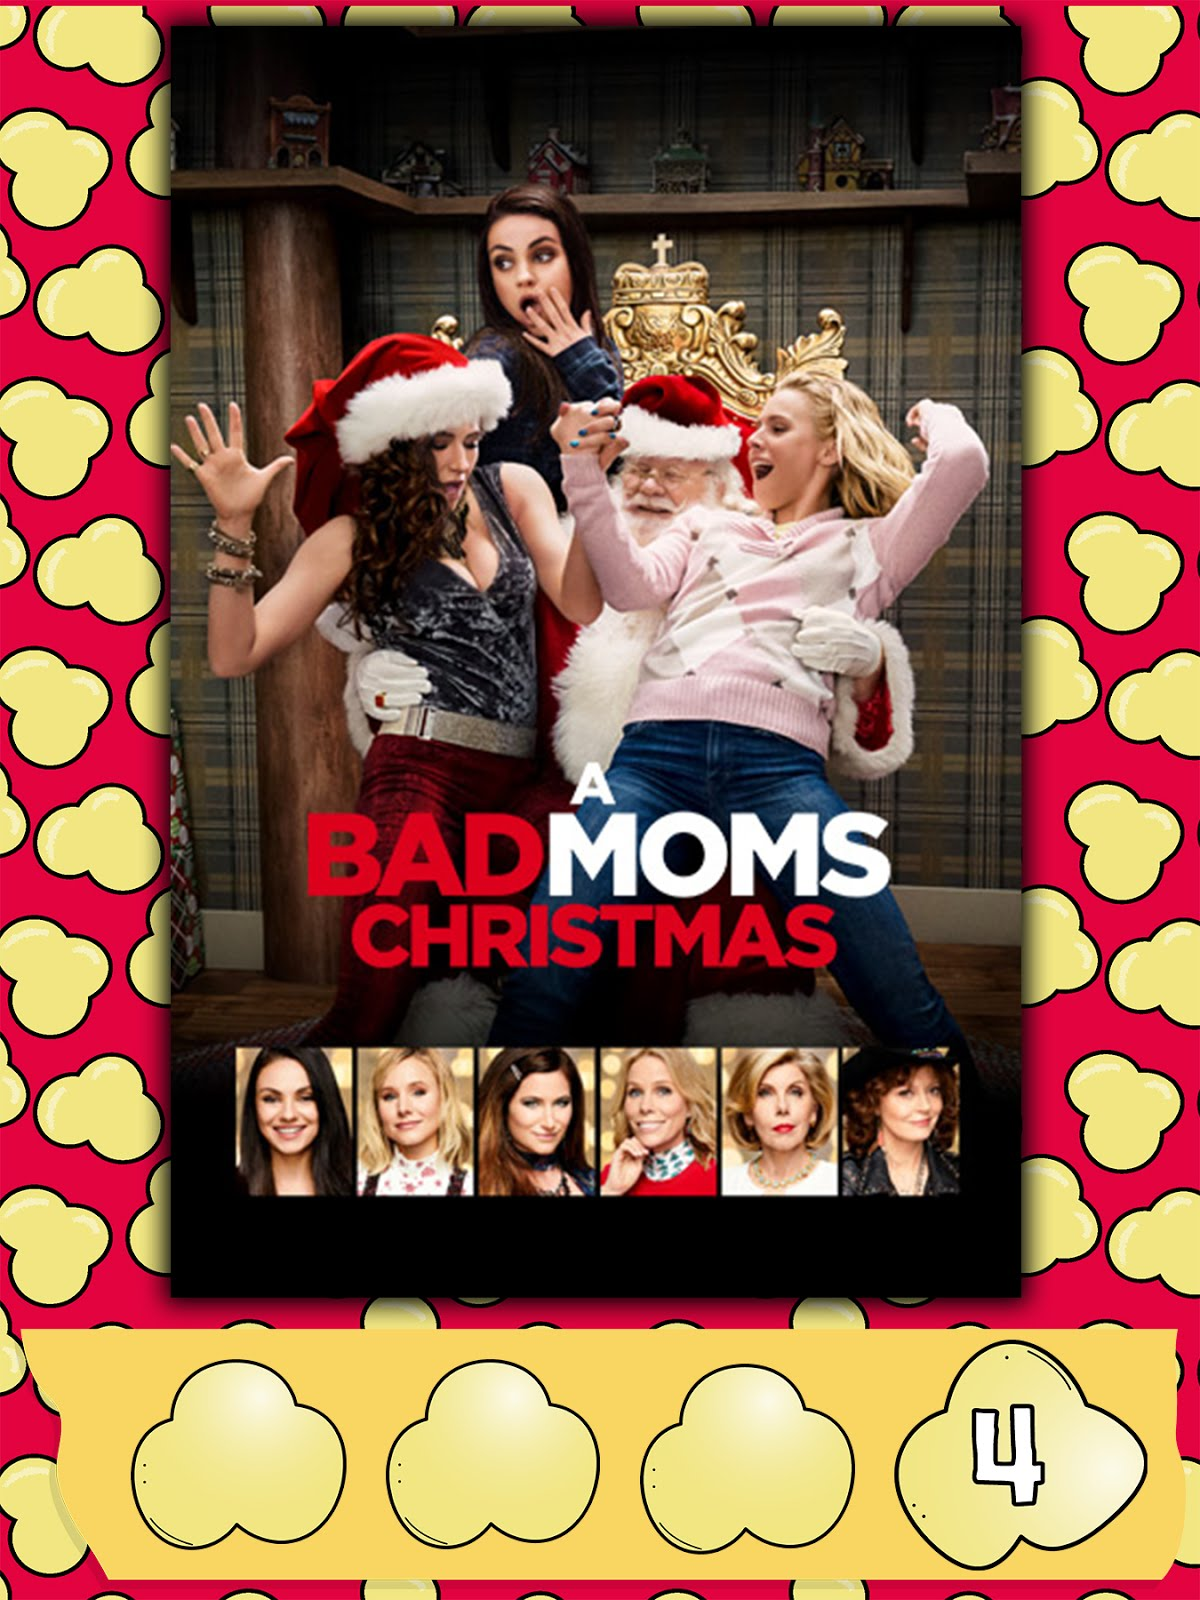 A Bad Moms Christmas 2017.Poppin Movies A Bad Moms Christmas 2017